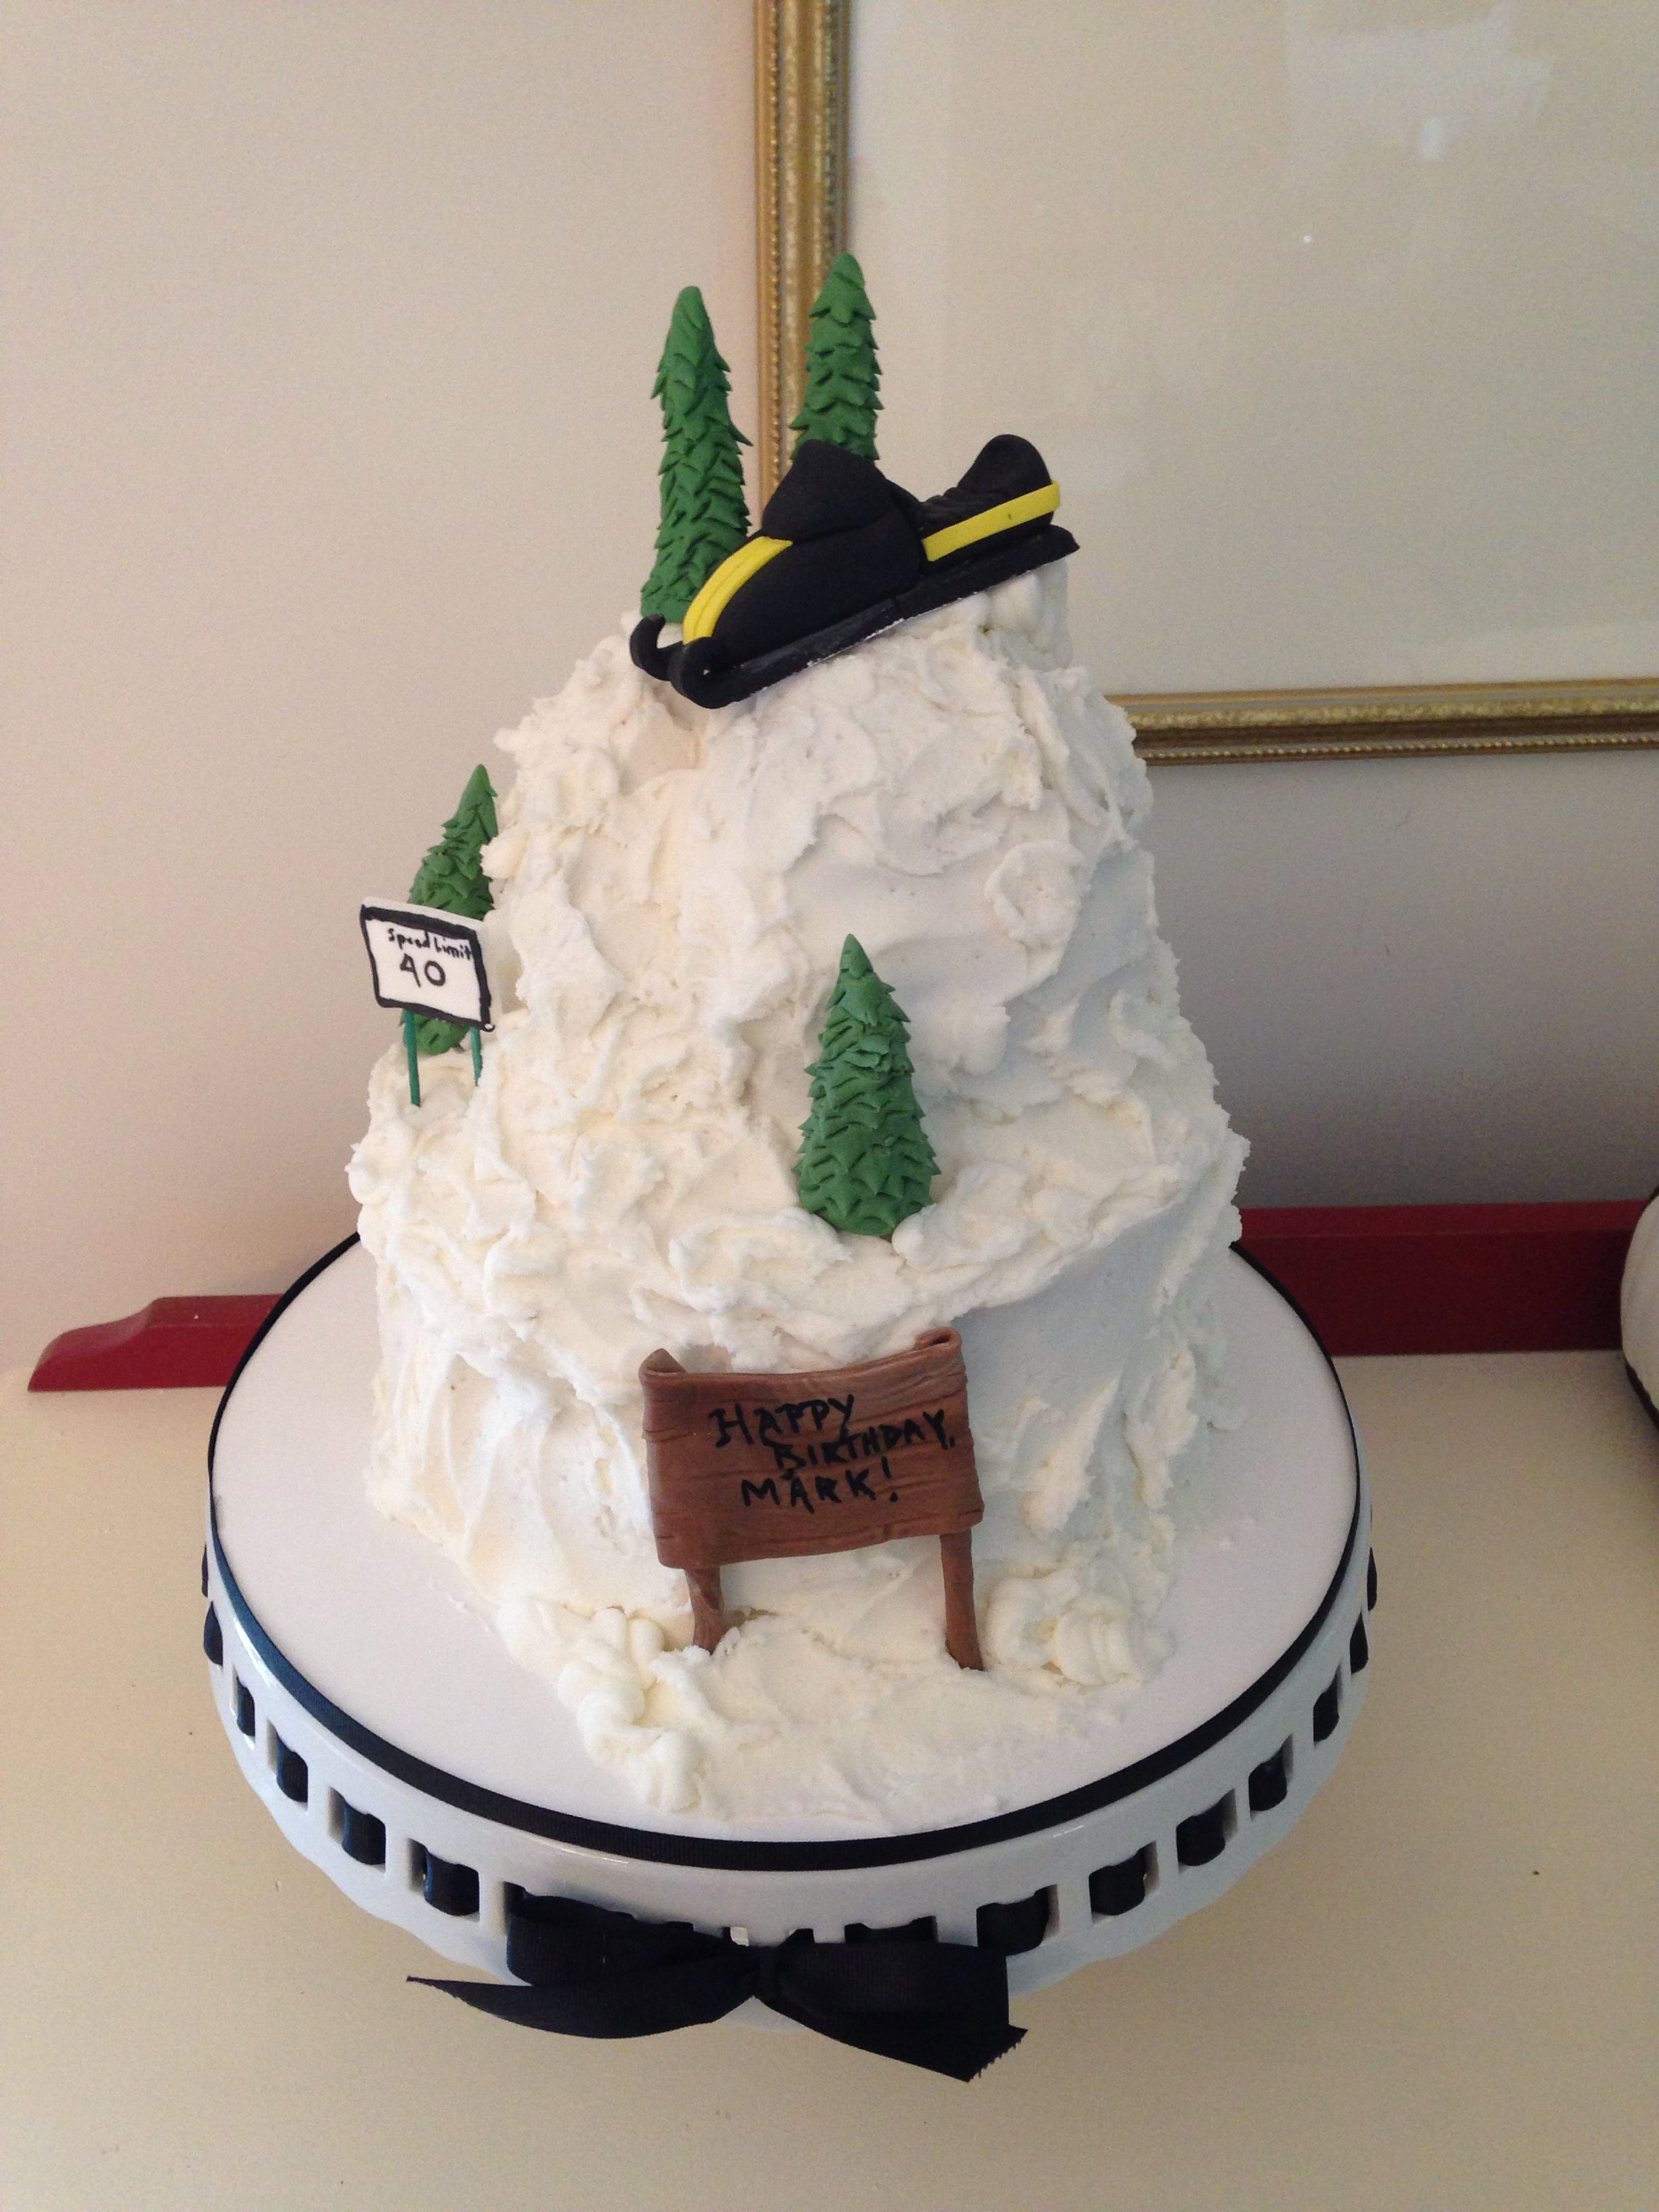 Snowmobile cake, by Amy Hart